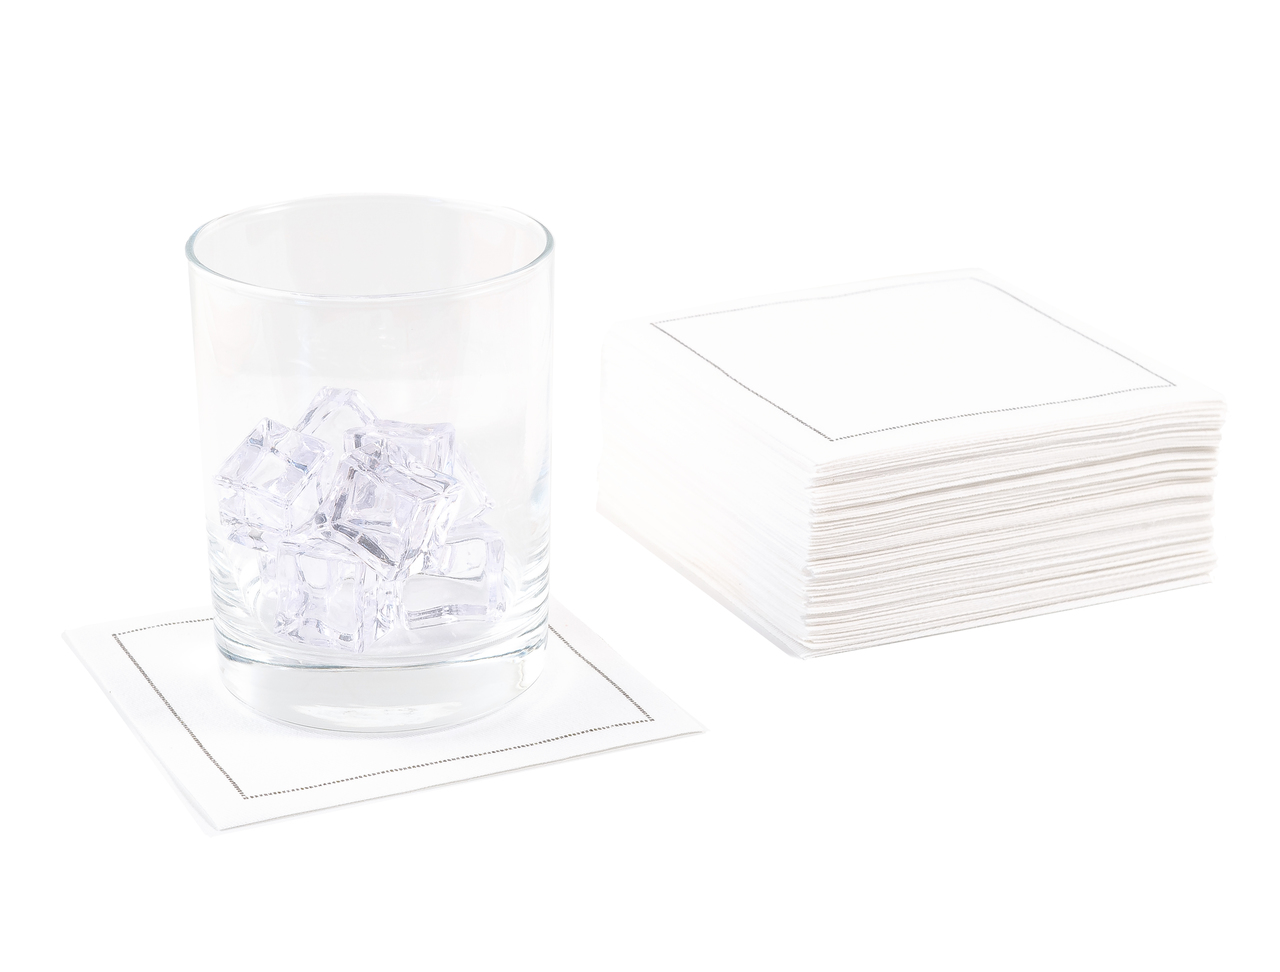 "White Cotton Cocktail (140 GSM) - 4.5"" x 4.5"" -1200 units"